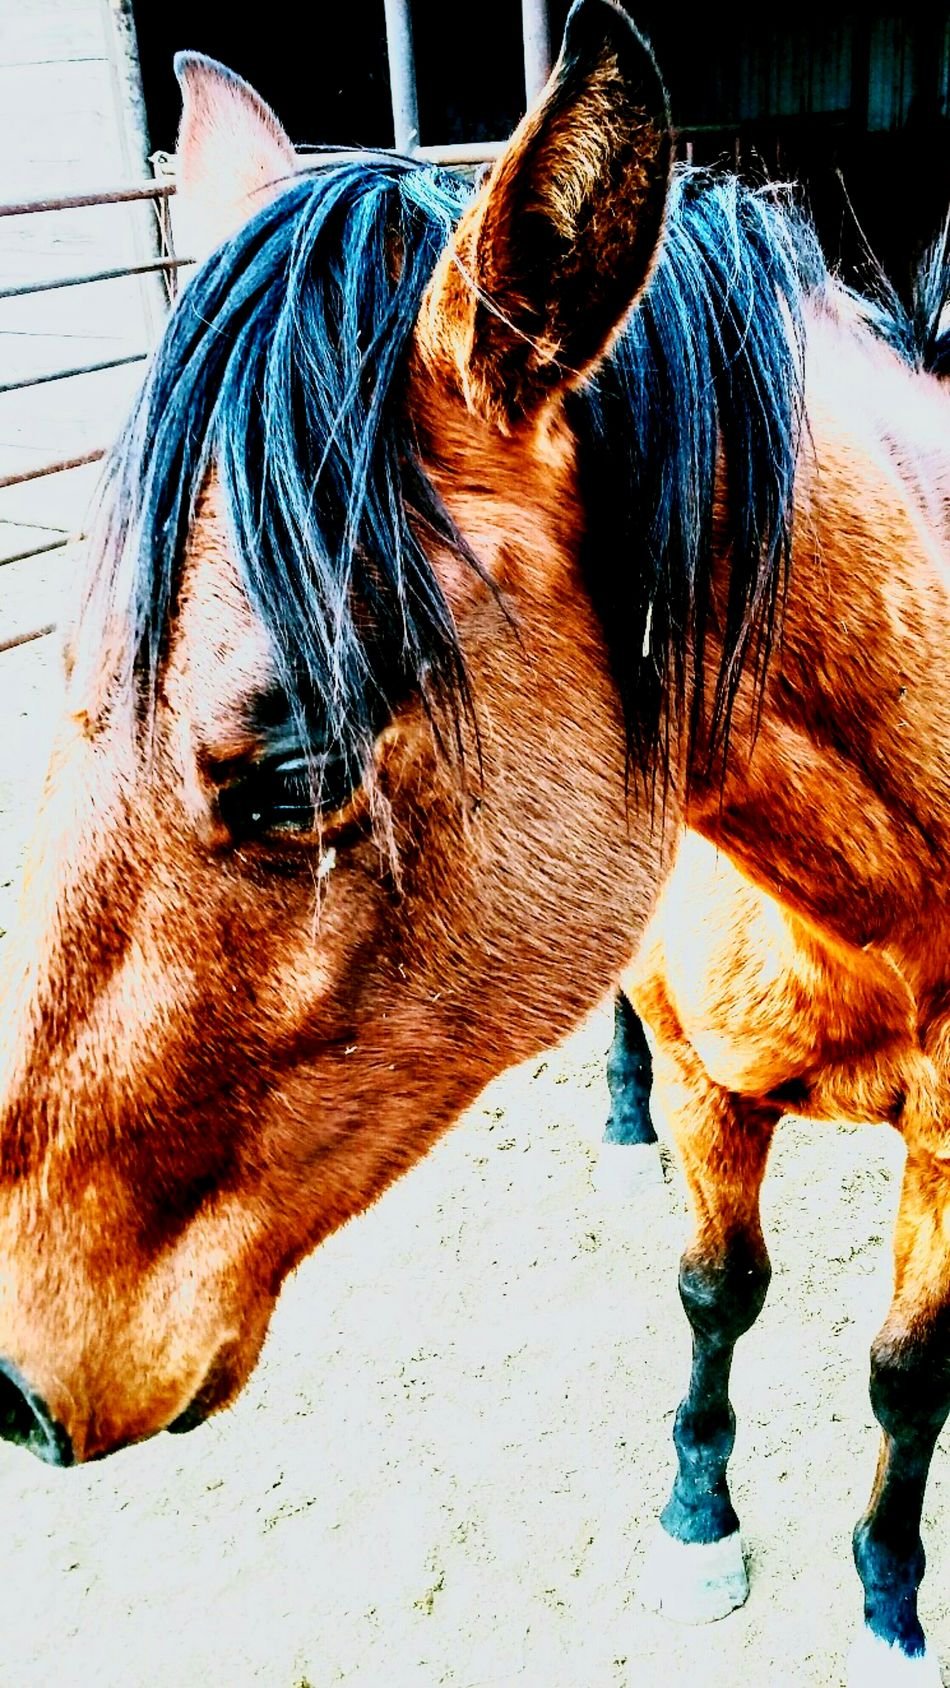 Ranch horses Animal Themes Mammal Domestic Animals One Animal No People Day Livestock Outdoors Working Animal Close-up Mane Stable Country Life Cowboy Farm Ranch Life Ranch Barn Country Living Horse Filly Color Portrait Paddock Silhouette